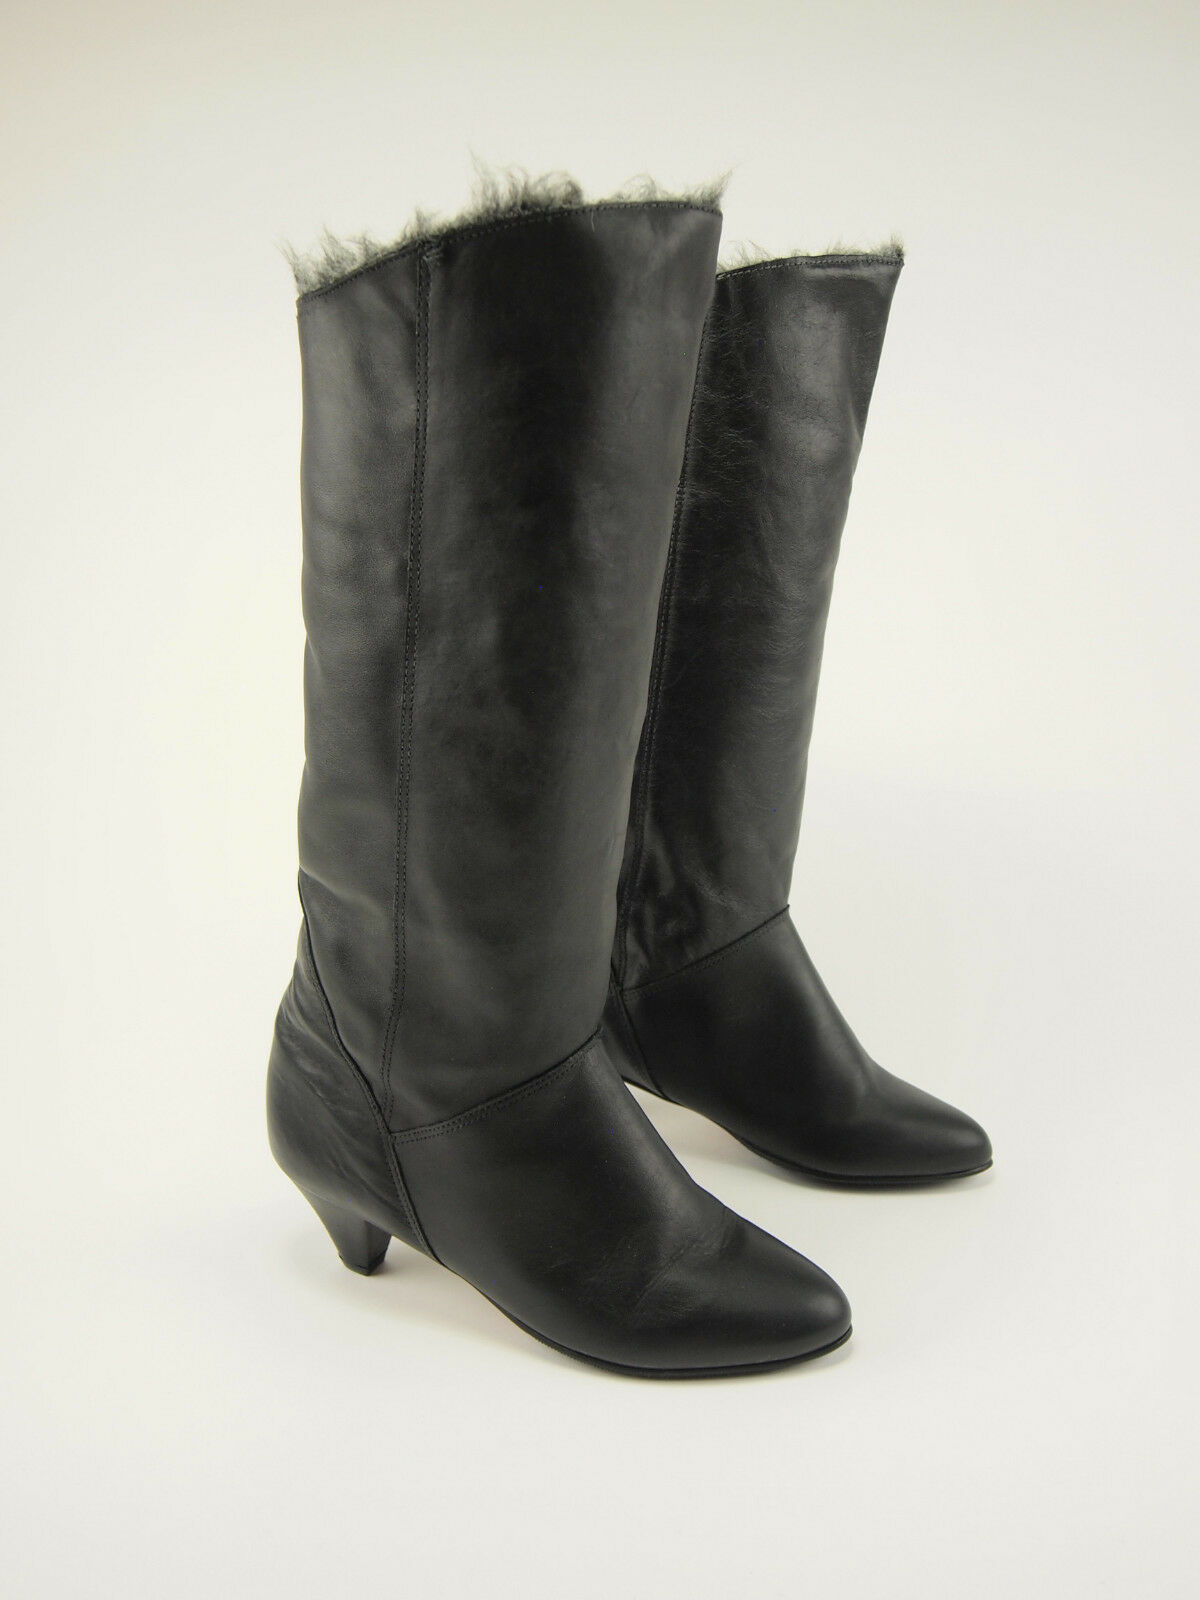 New  1980s COUGAR Vintage Winter Leder Sherpa-lined Winter Vintage Dress Stiefel 7.5 3bd424